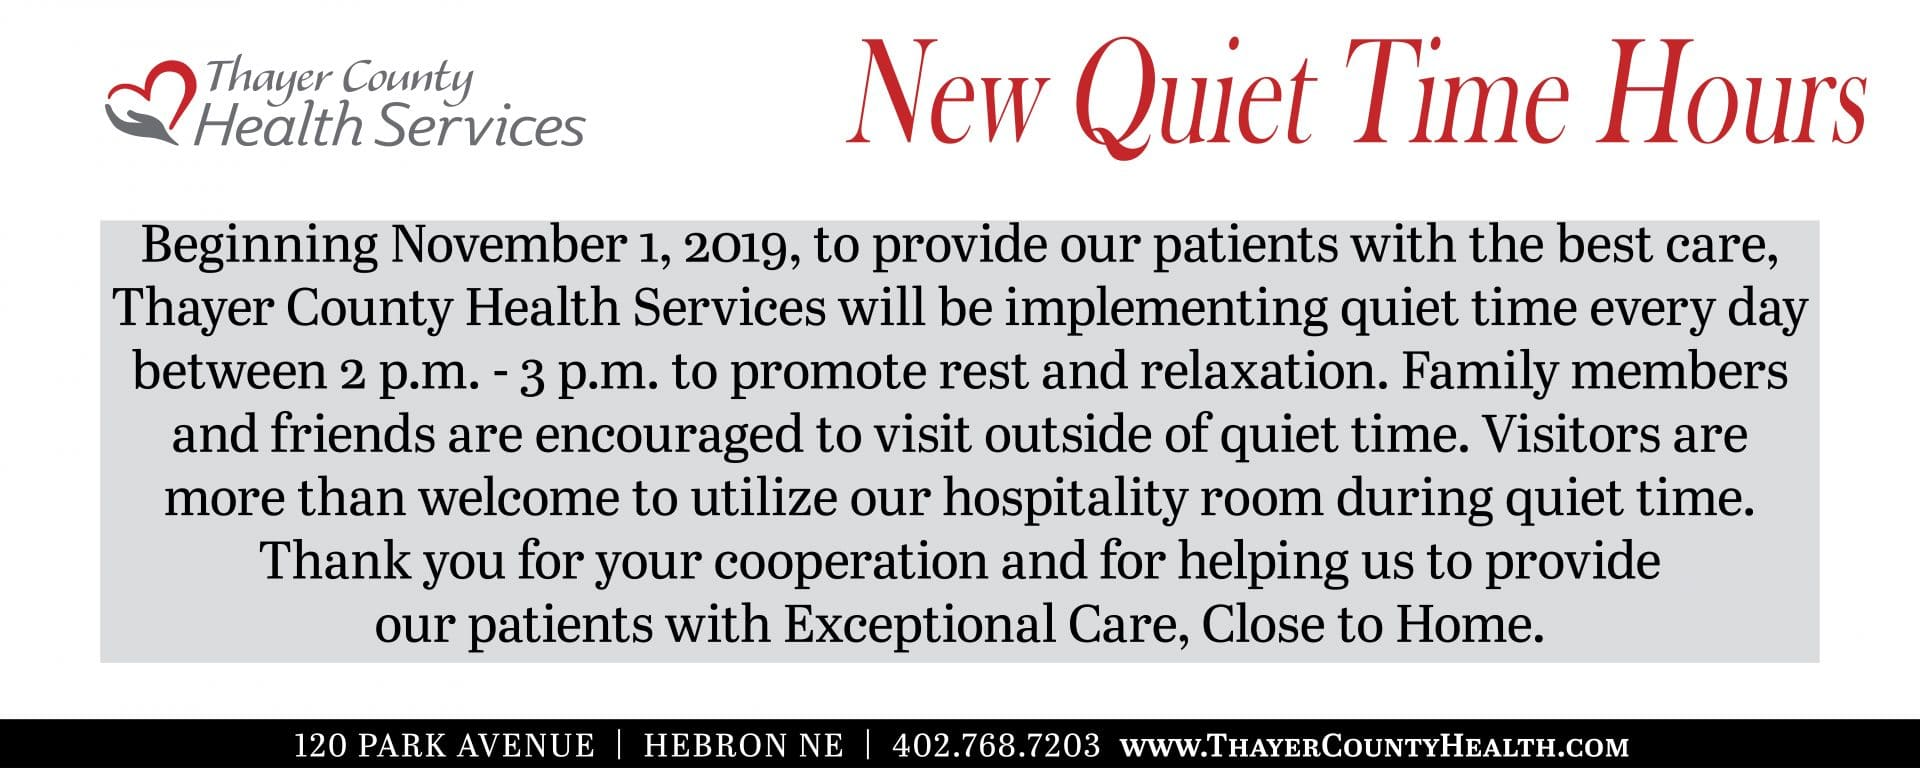 New Quiet Time Hours